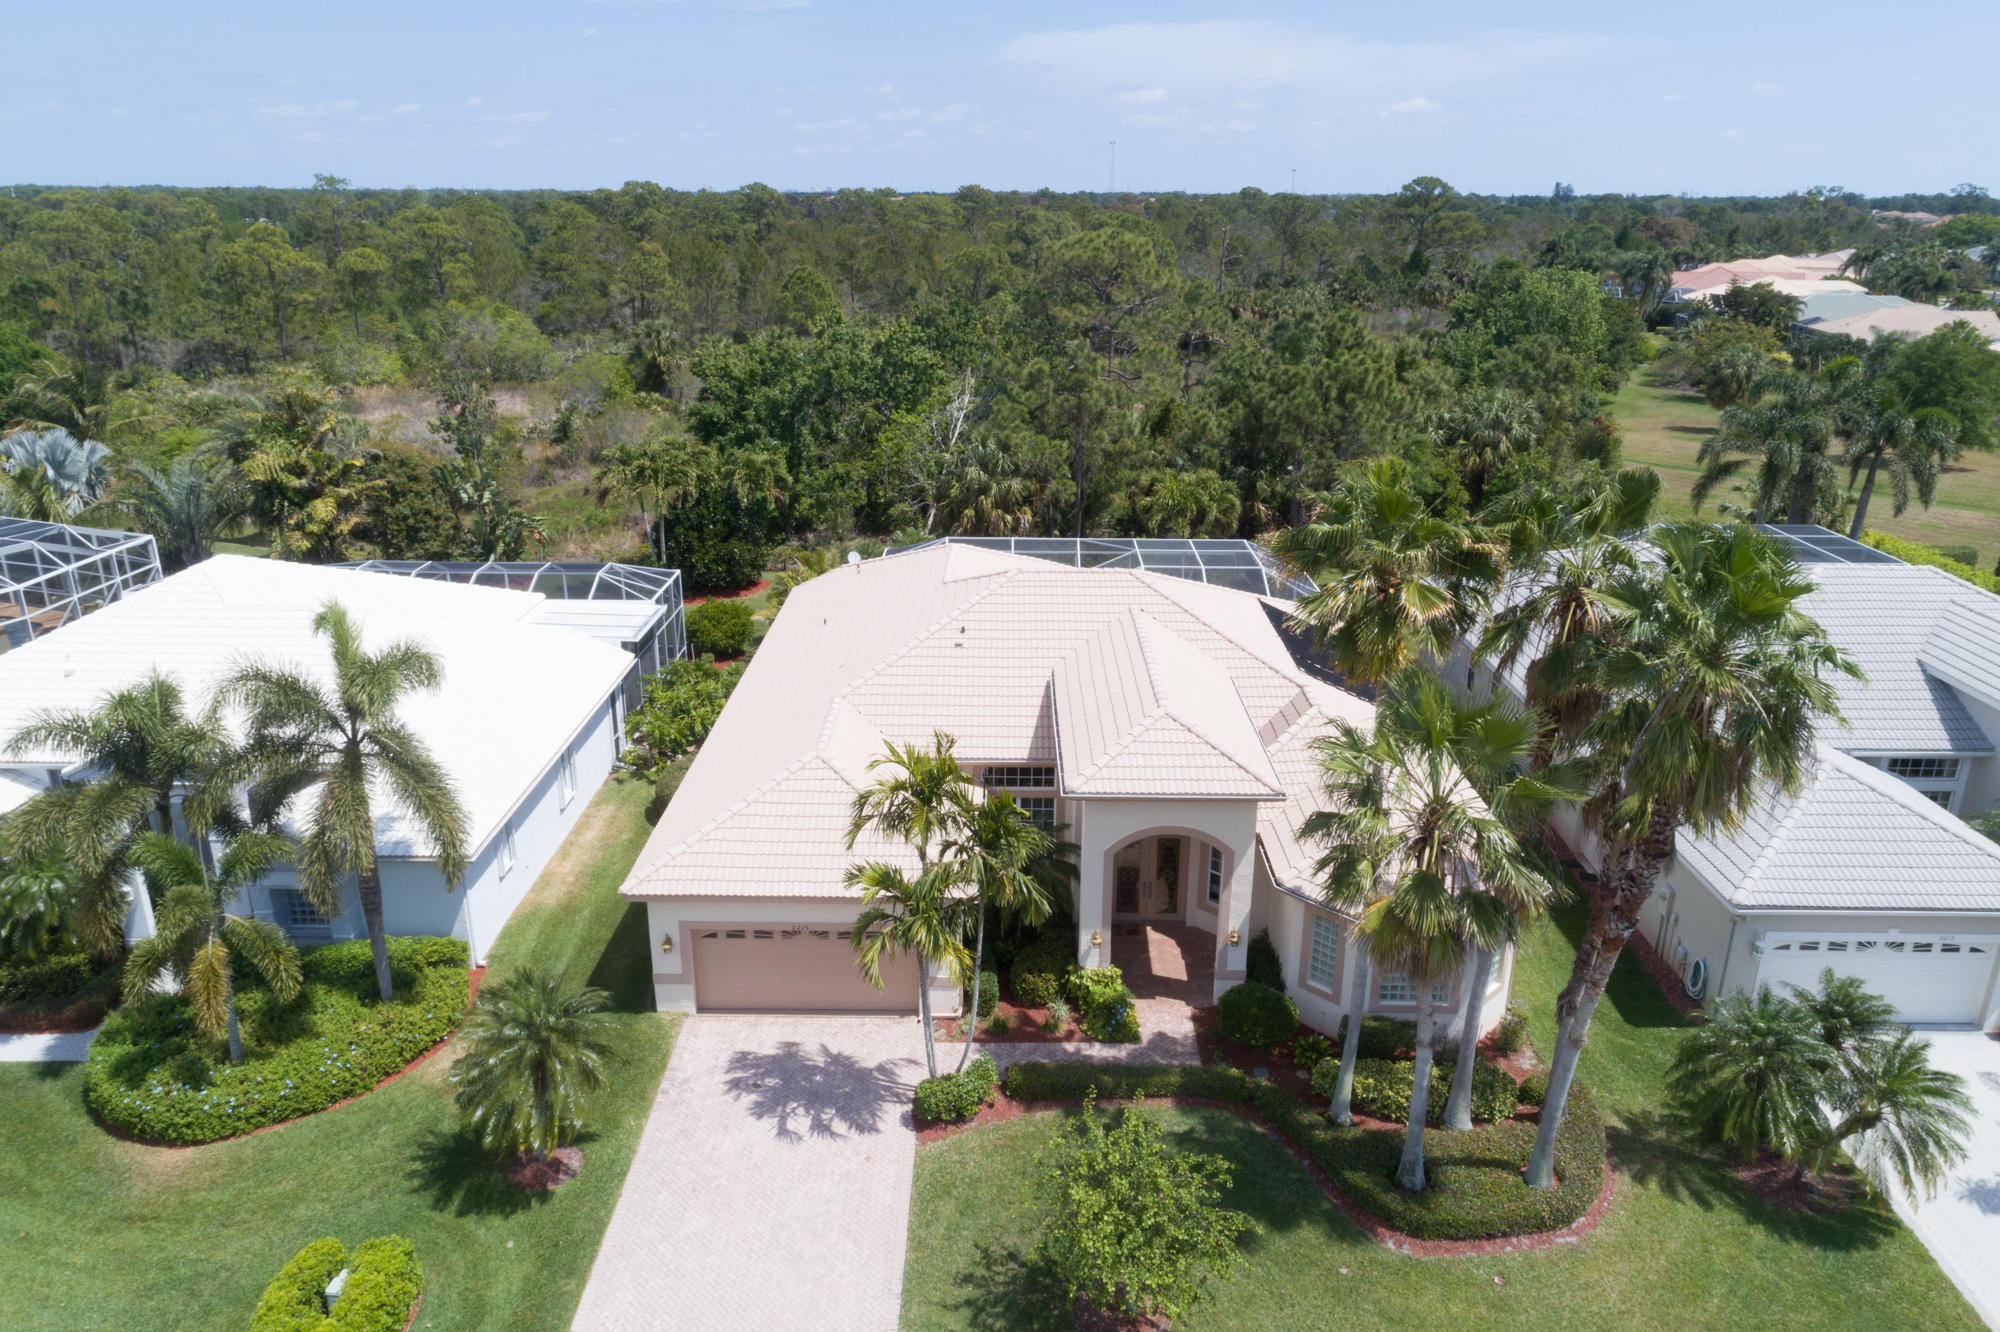 2215 Stonehaven Road, Port Saint Lucie, Florida 34952, 3 Bedrooms Bedrooms, ,3 BathroomsBathrooms,Single Family,For Sale,Ballantrae/Stonehaven,Stonehaven,RX-10414886